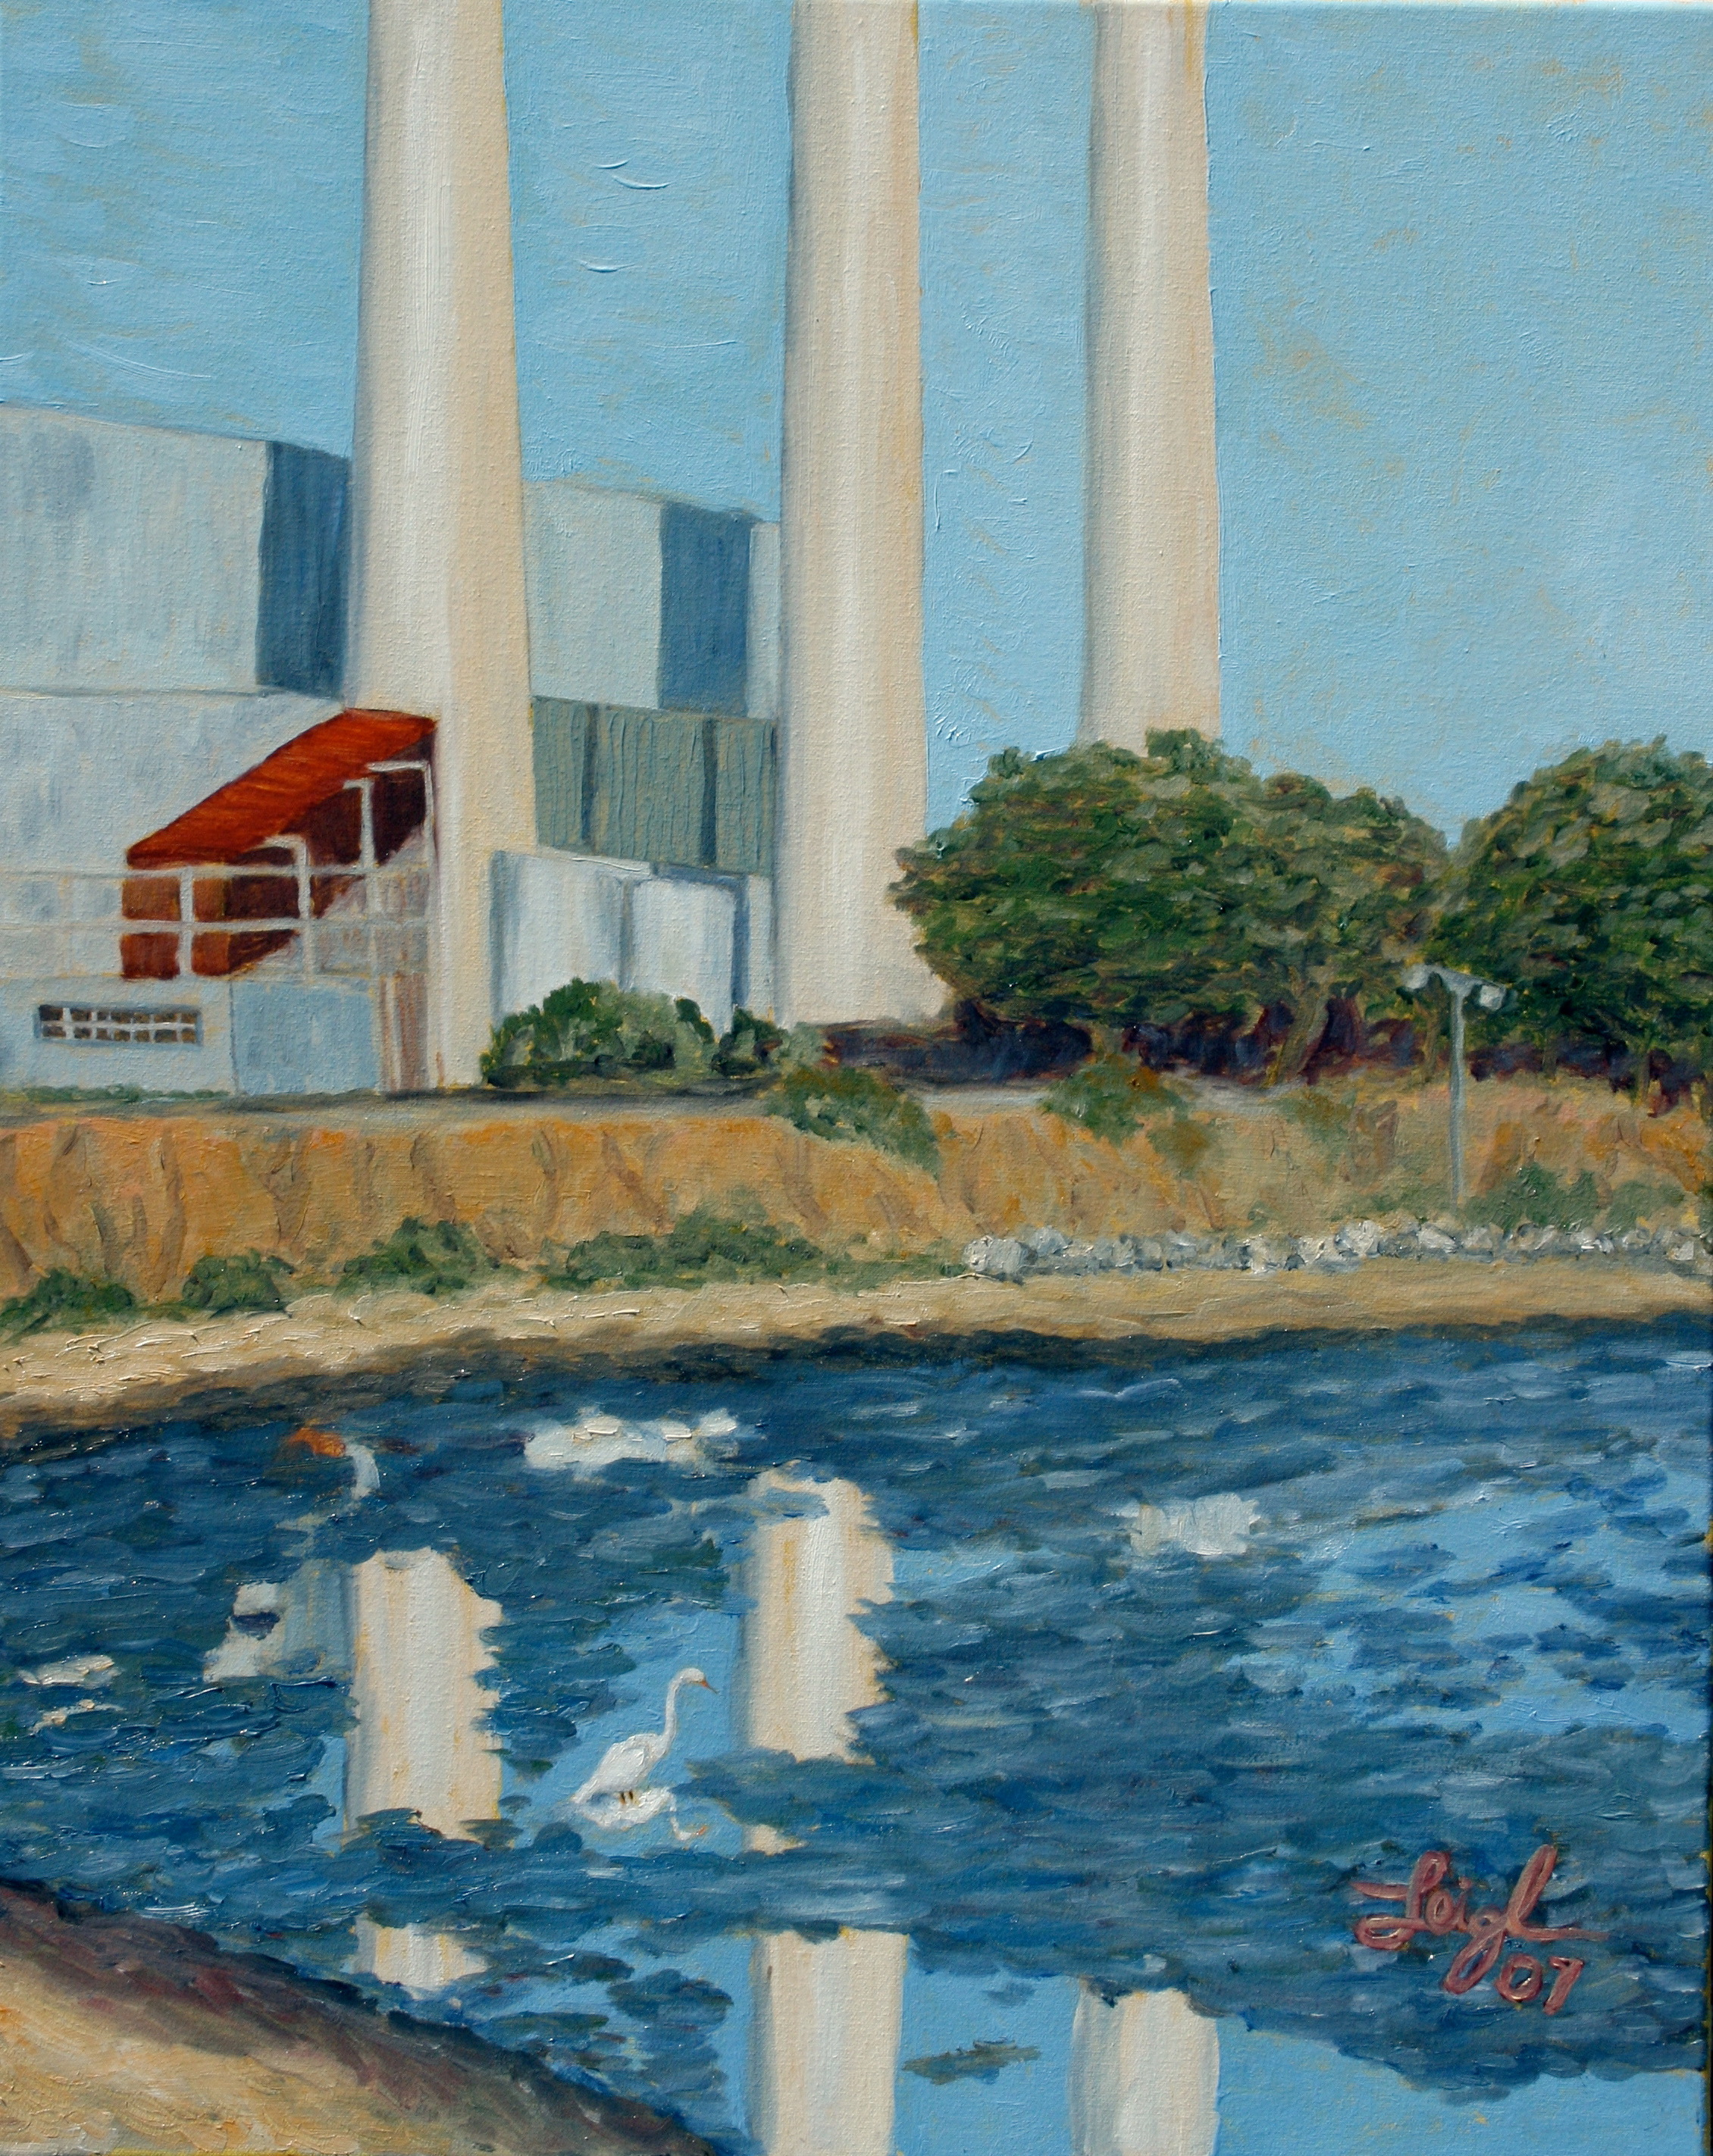 Morro Bay Power Plant  ~   Neil Cohn, Boston, MA 2007  •  24 x 30